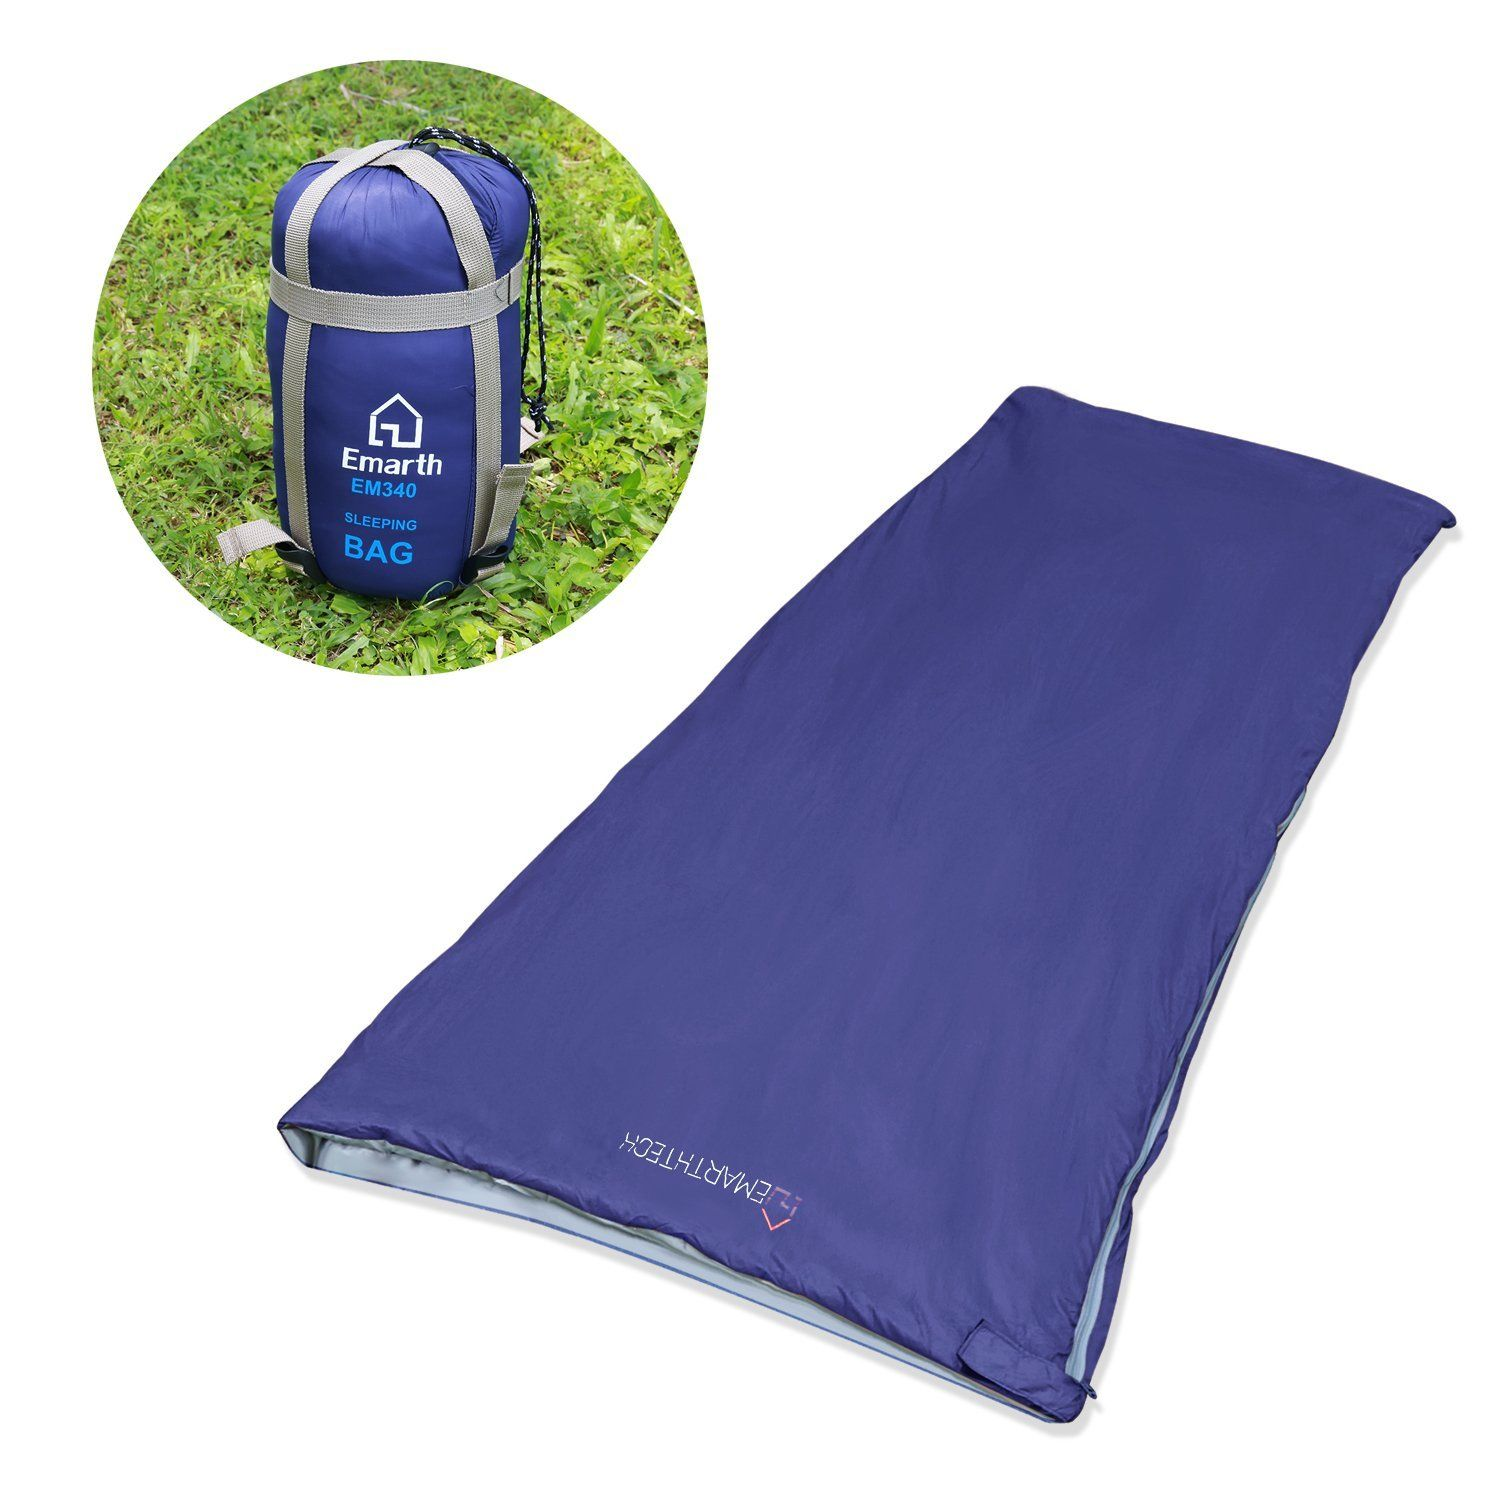 Emarth Warm Weather Sleeping Bag Large Compact Envelope Design For Temperatures 48 F To 60 Review More Details Here Camping Bags